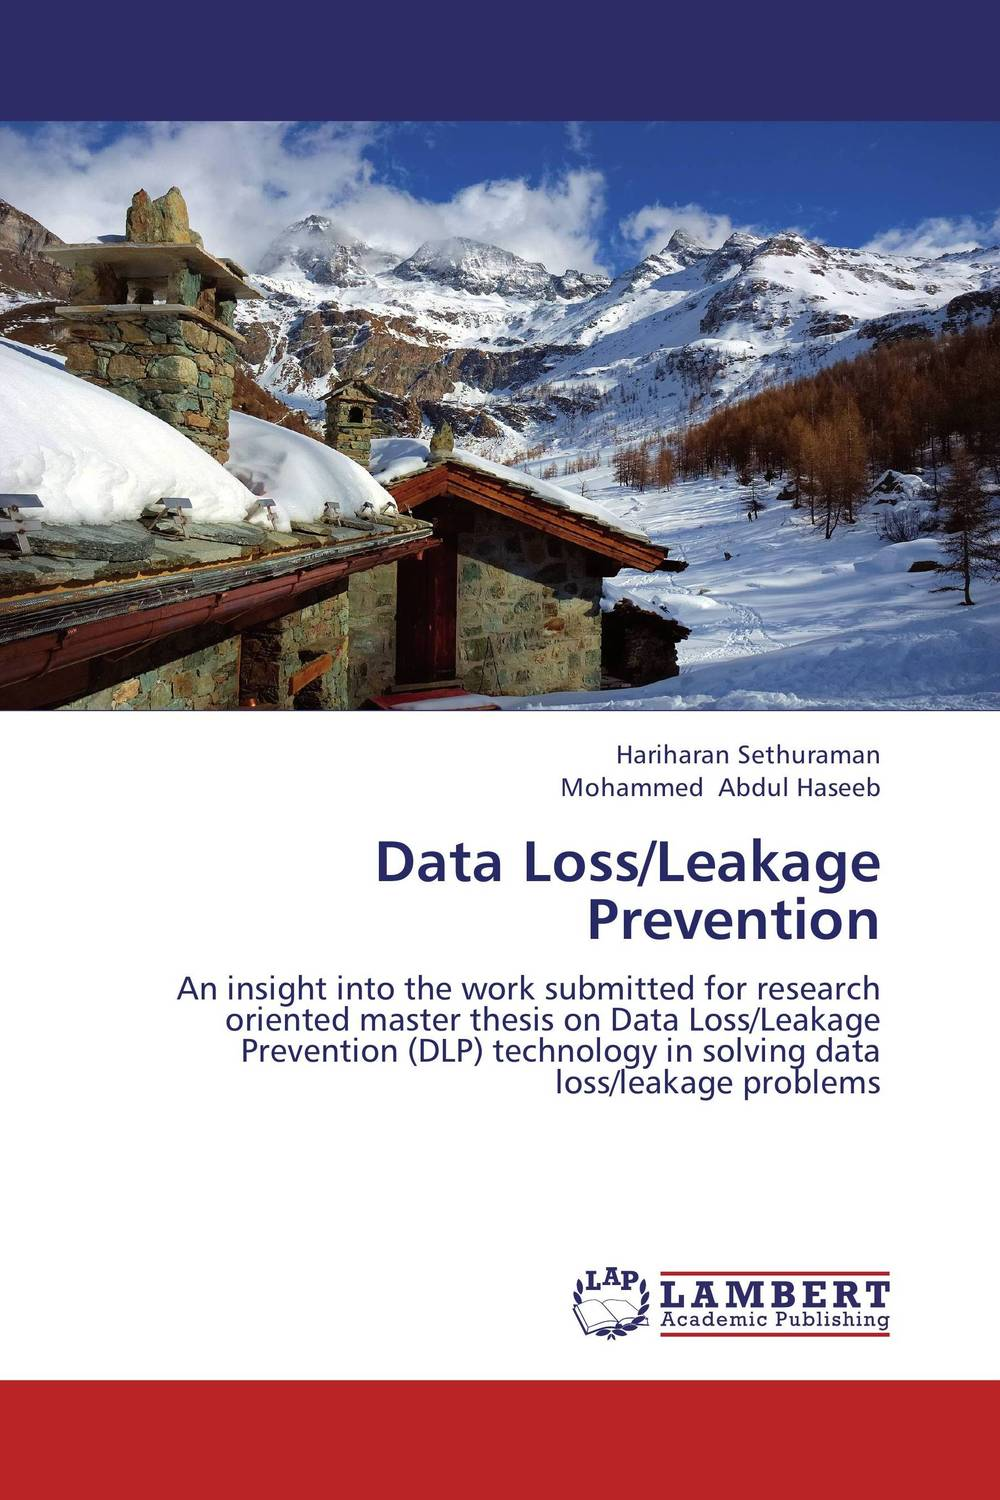 Data Loss/Leakage Prevention o fredholm loss prevention and safety promotion in the process industries